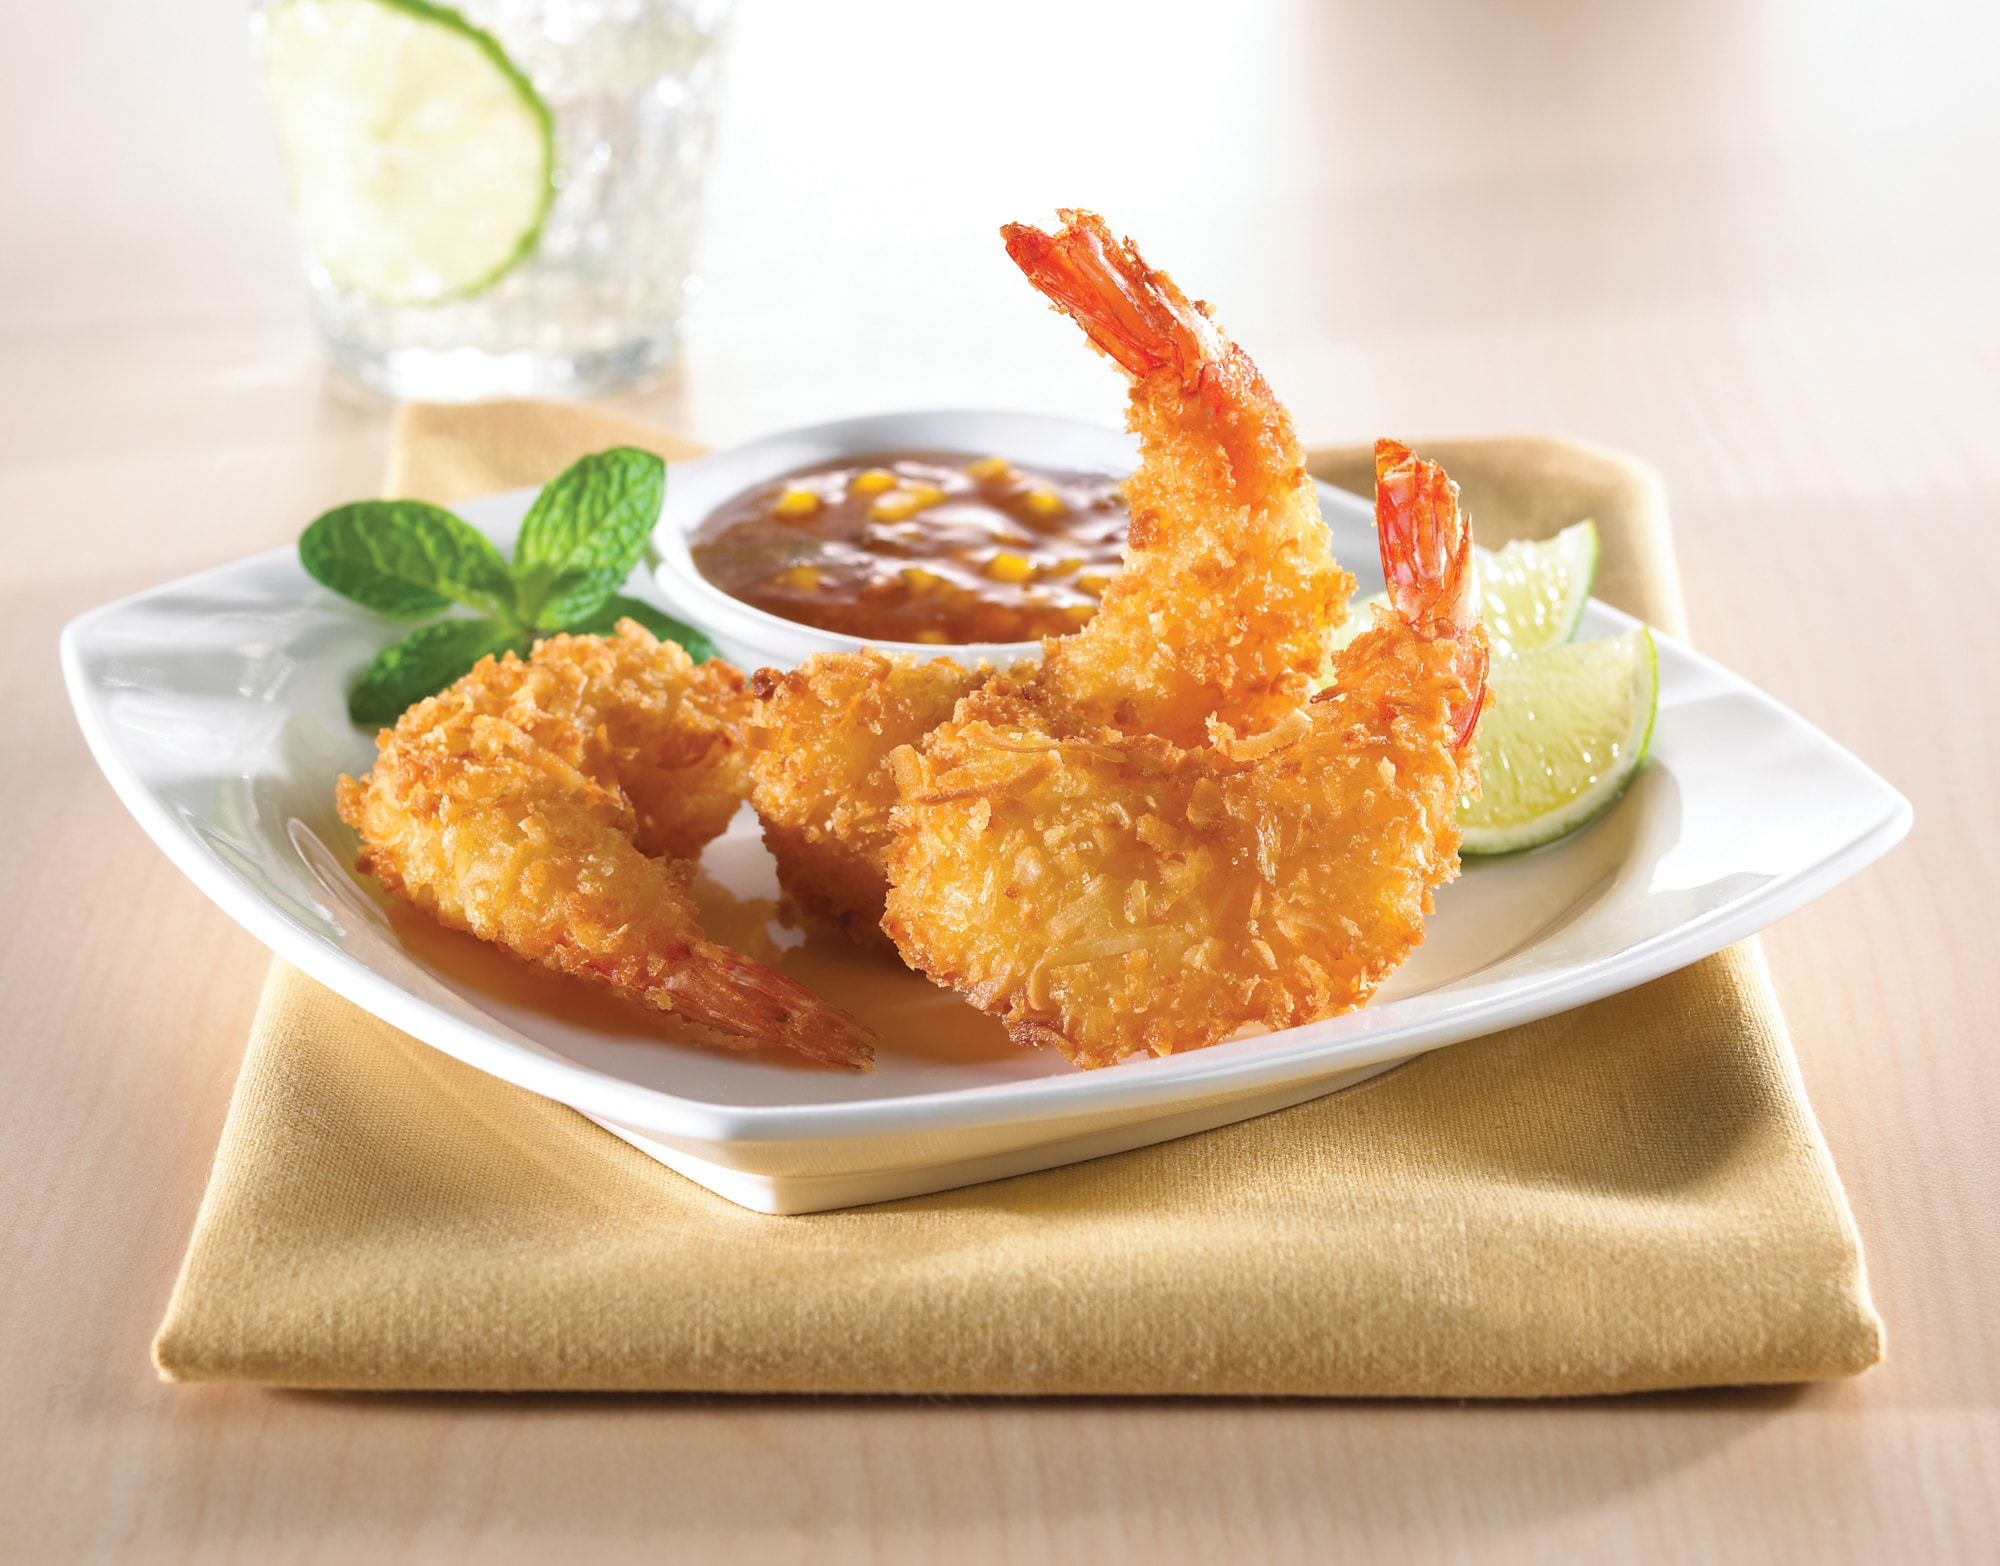 Mrs. Friday's Coconut Round Shrimp